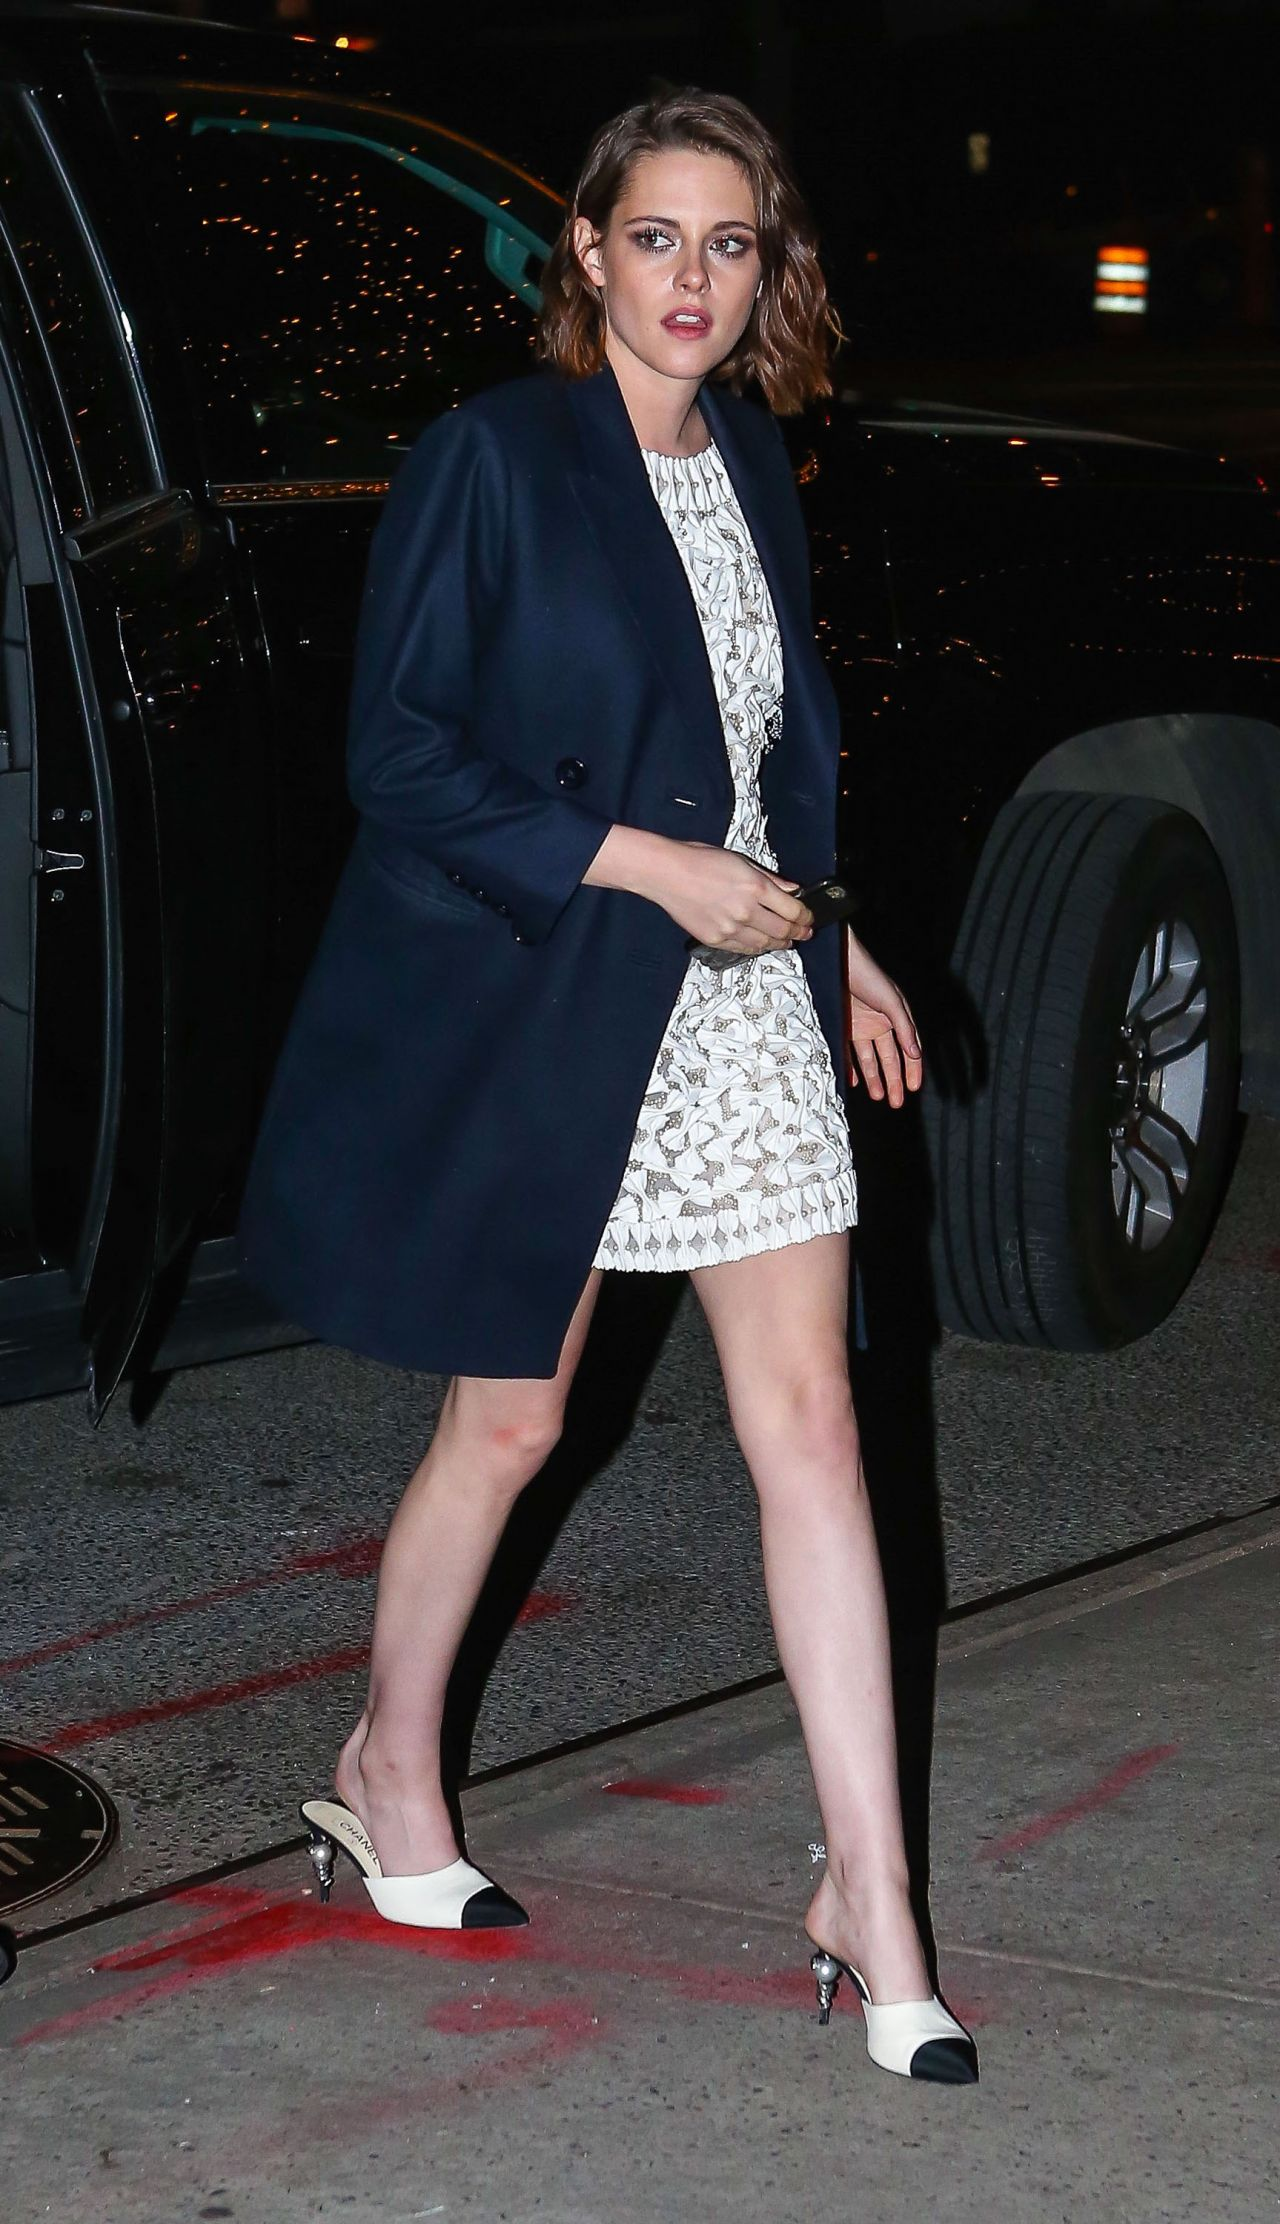 Kristen Stewart Arriving At The Bowery Hotel In New York